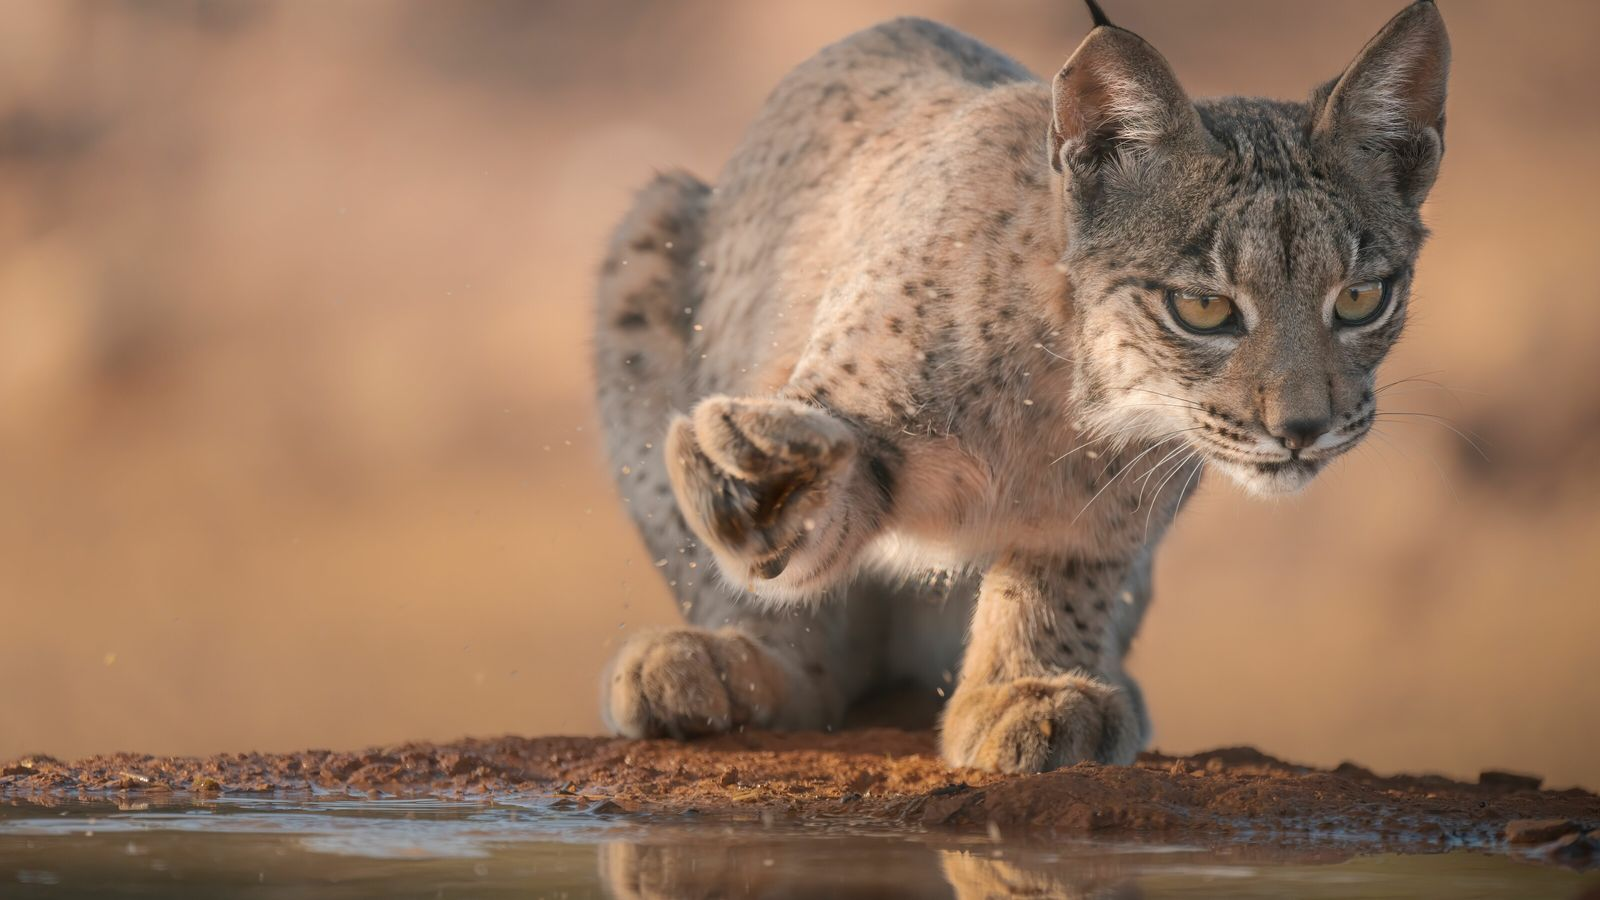 An Iberian lynx club spotted in Castile-La Mancha, central Spain. Hopes of seeing the elusive felines ...